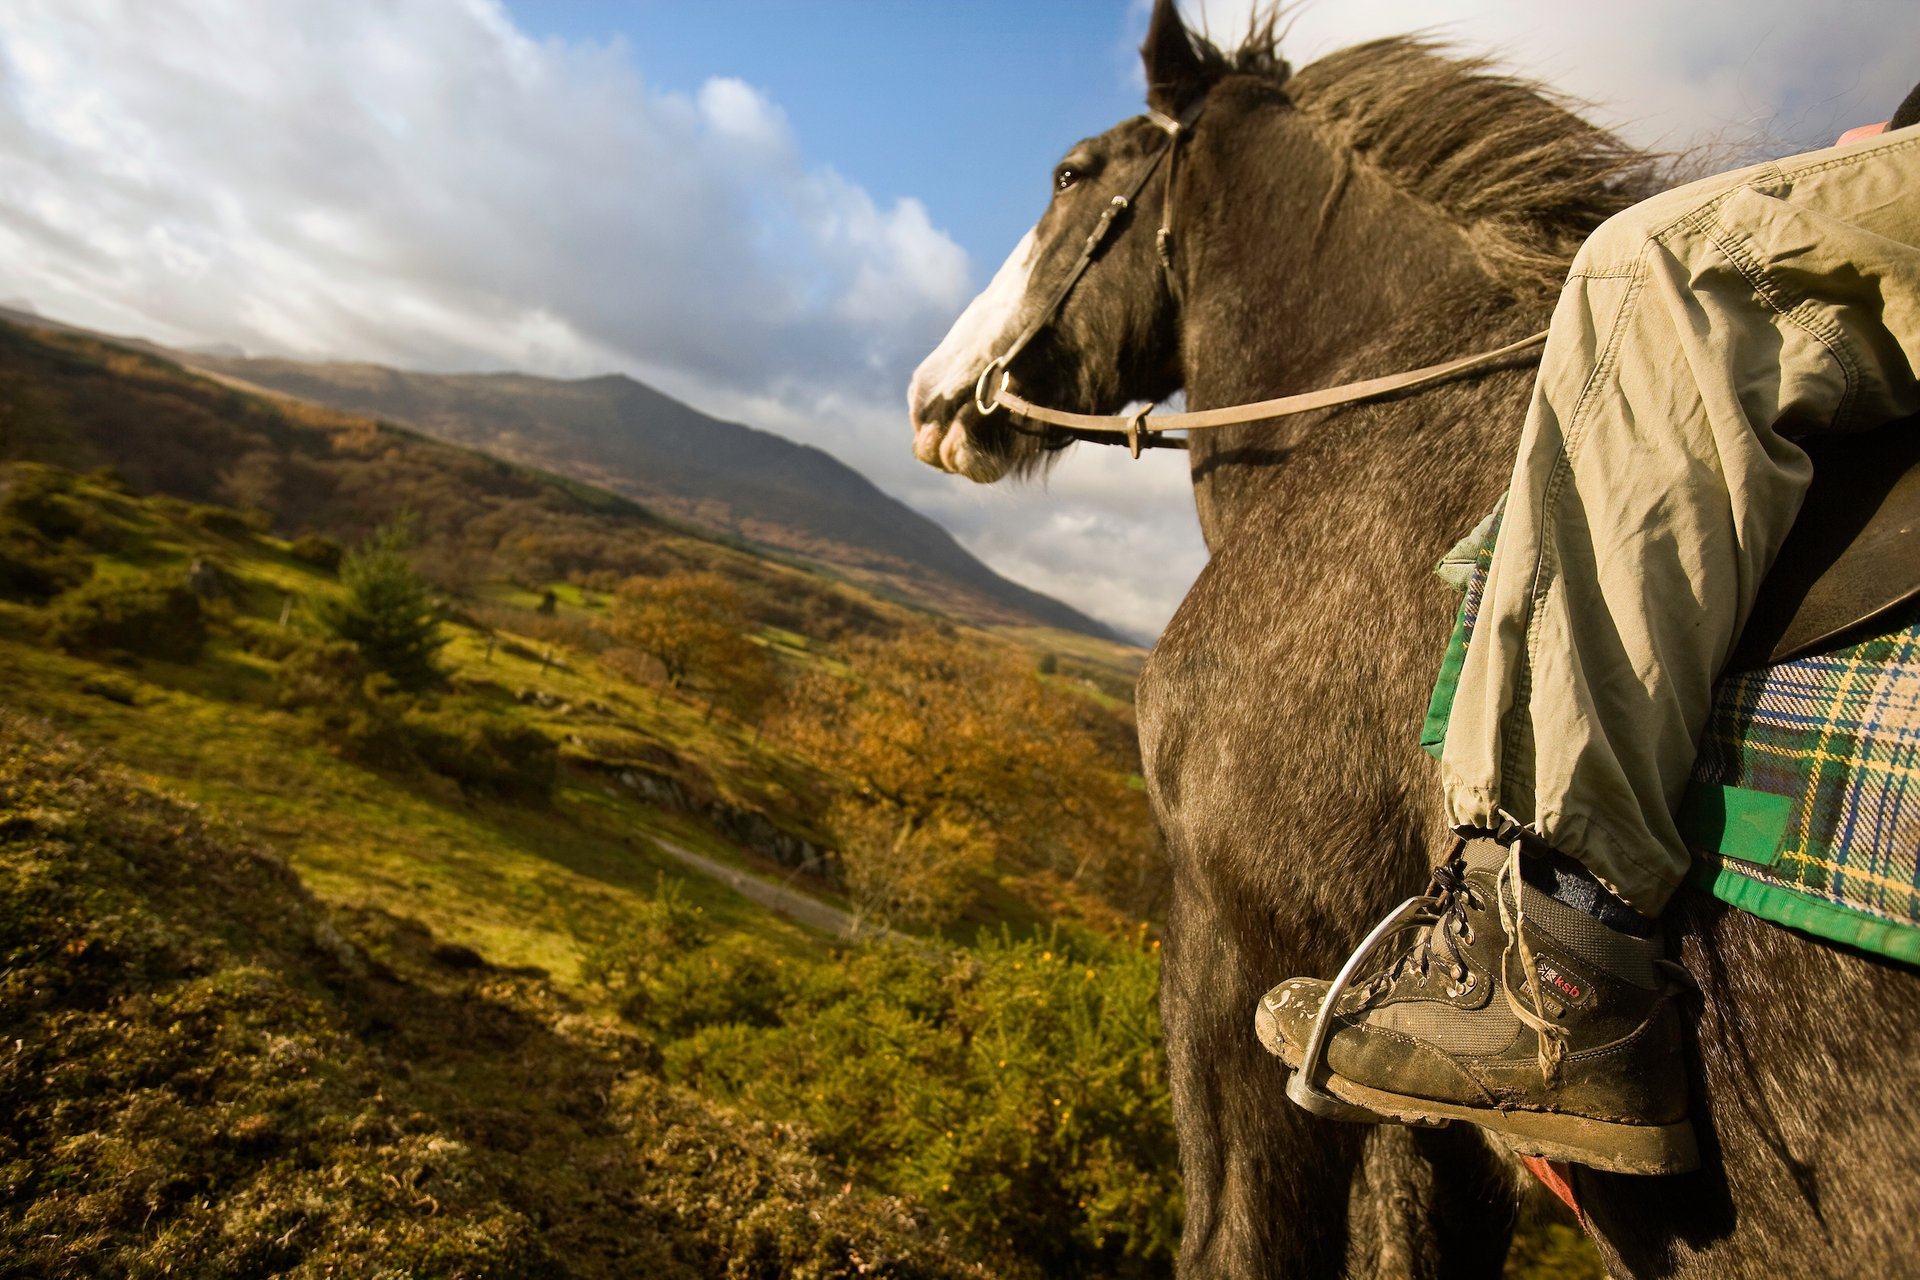 Horse Riding in Wales - Best Season